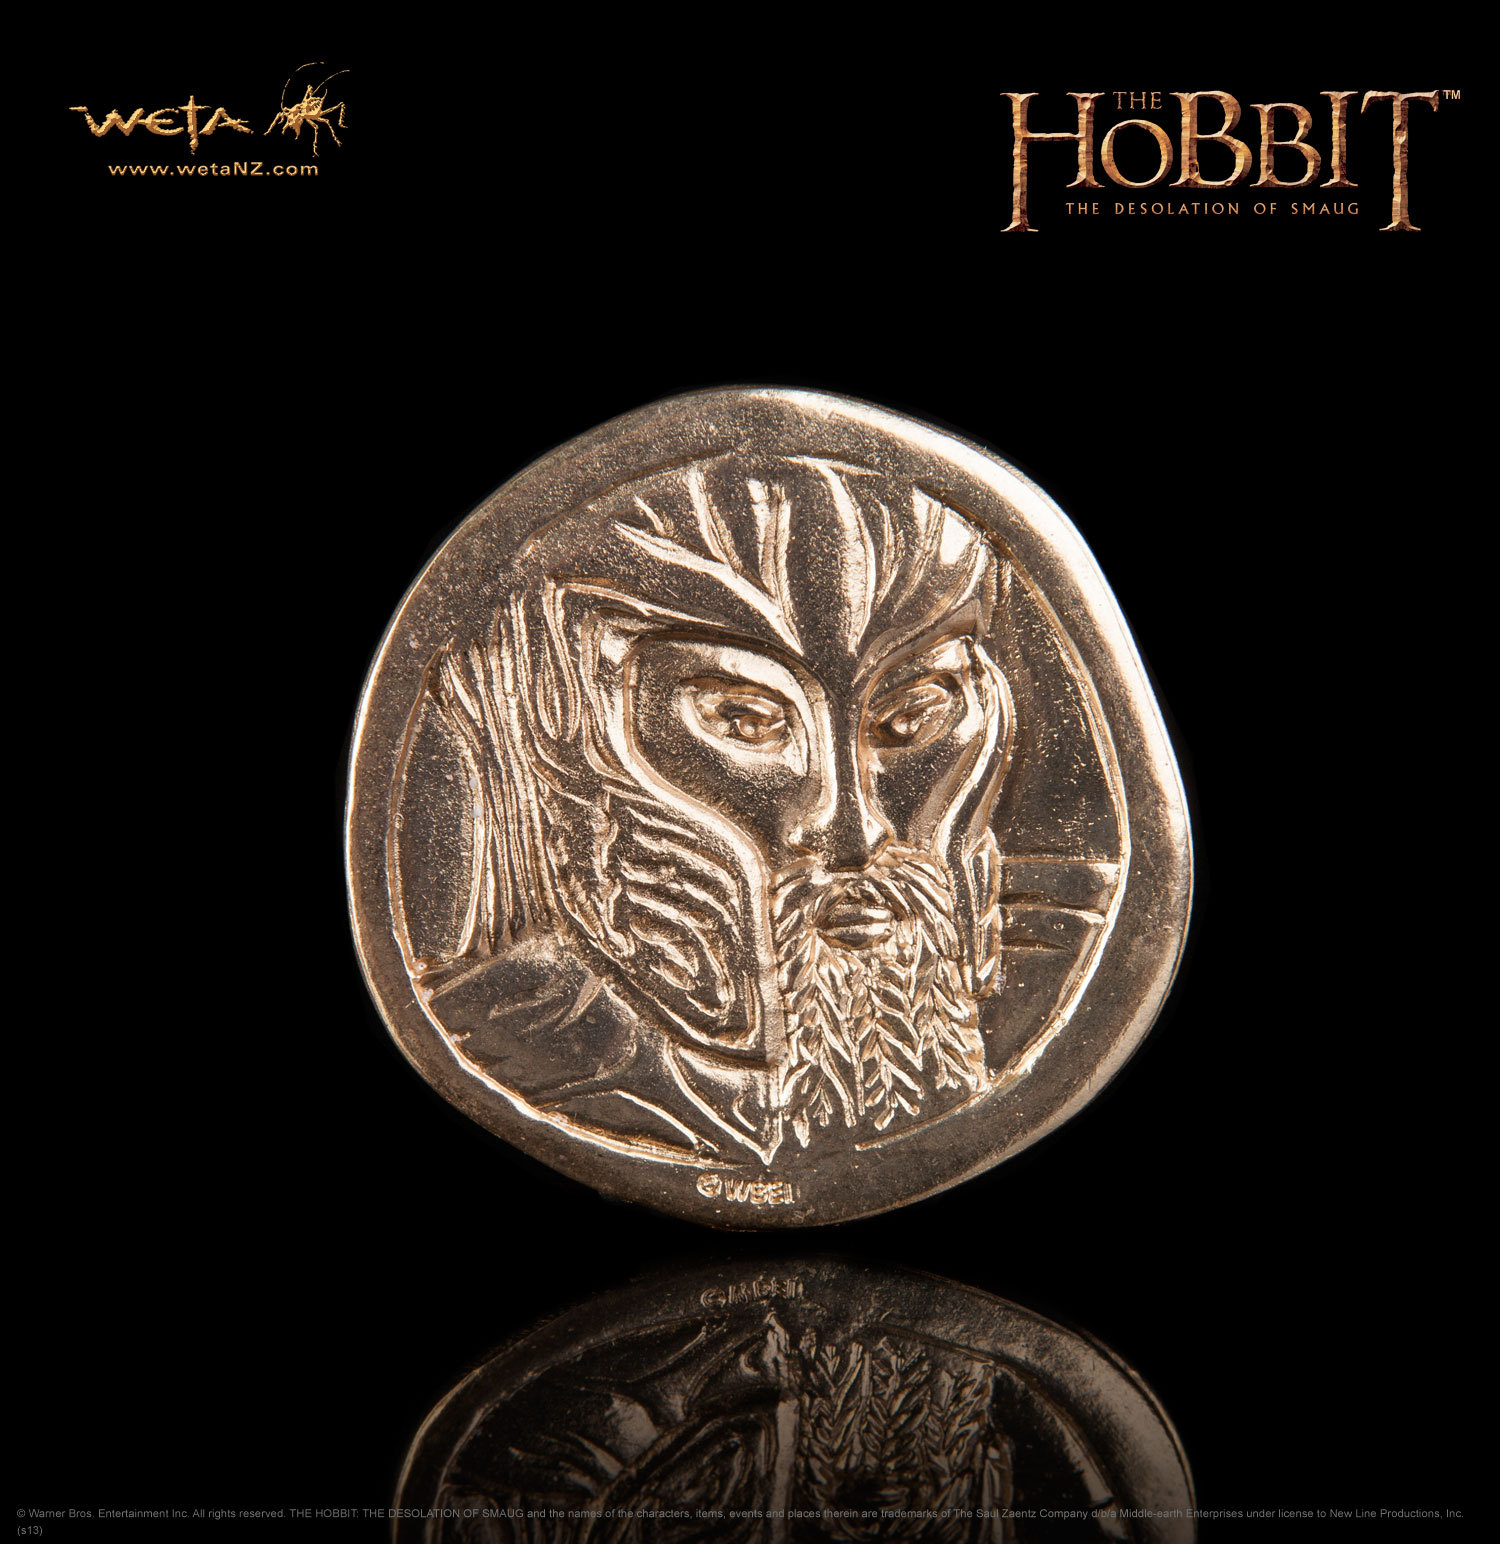 The Hobbit: Desolation of Smaug Treasure Coin #3 - by Weta image